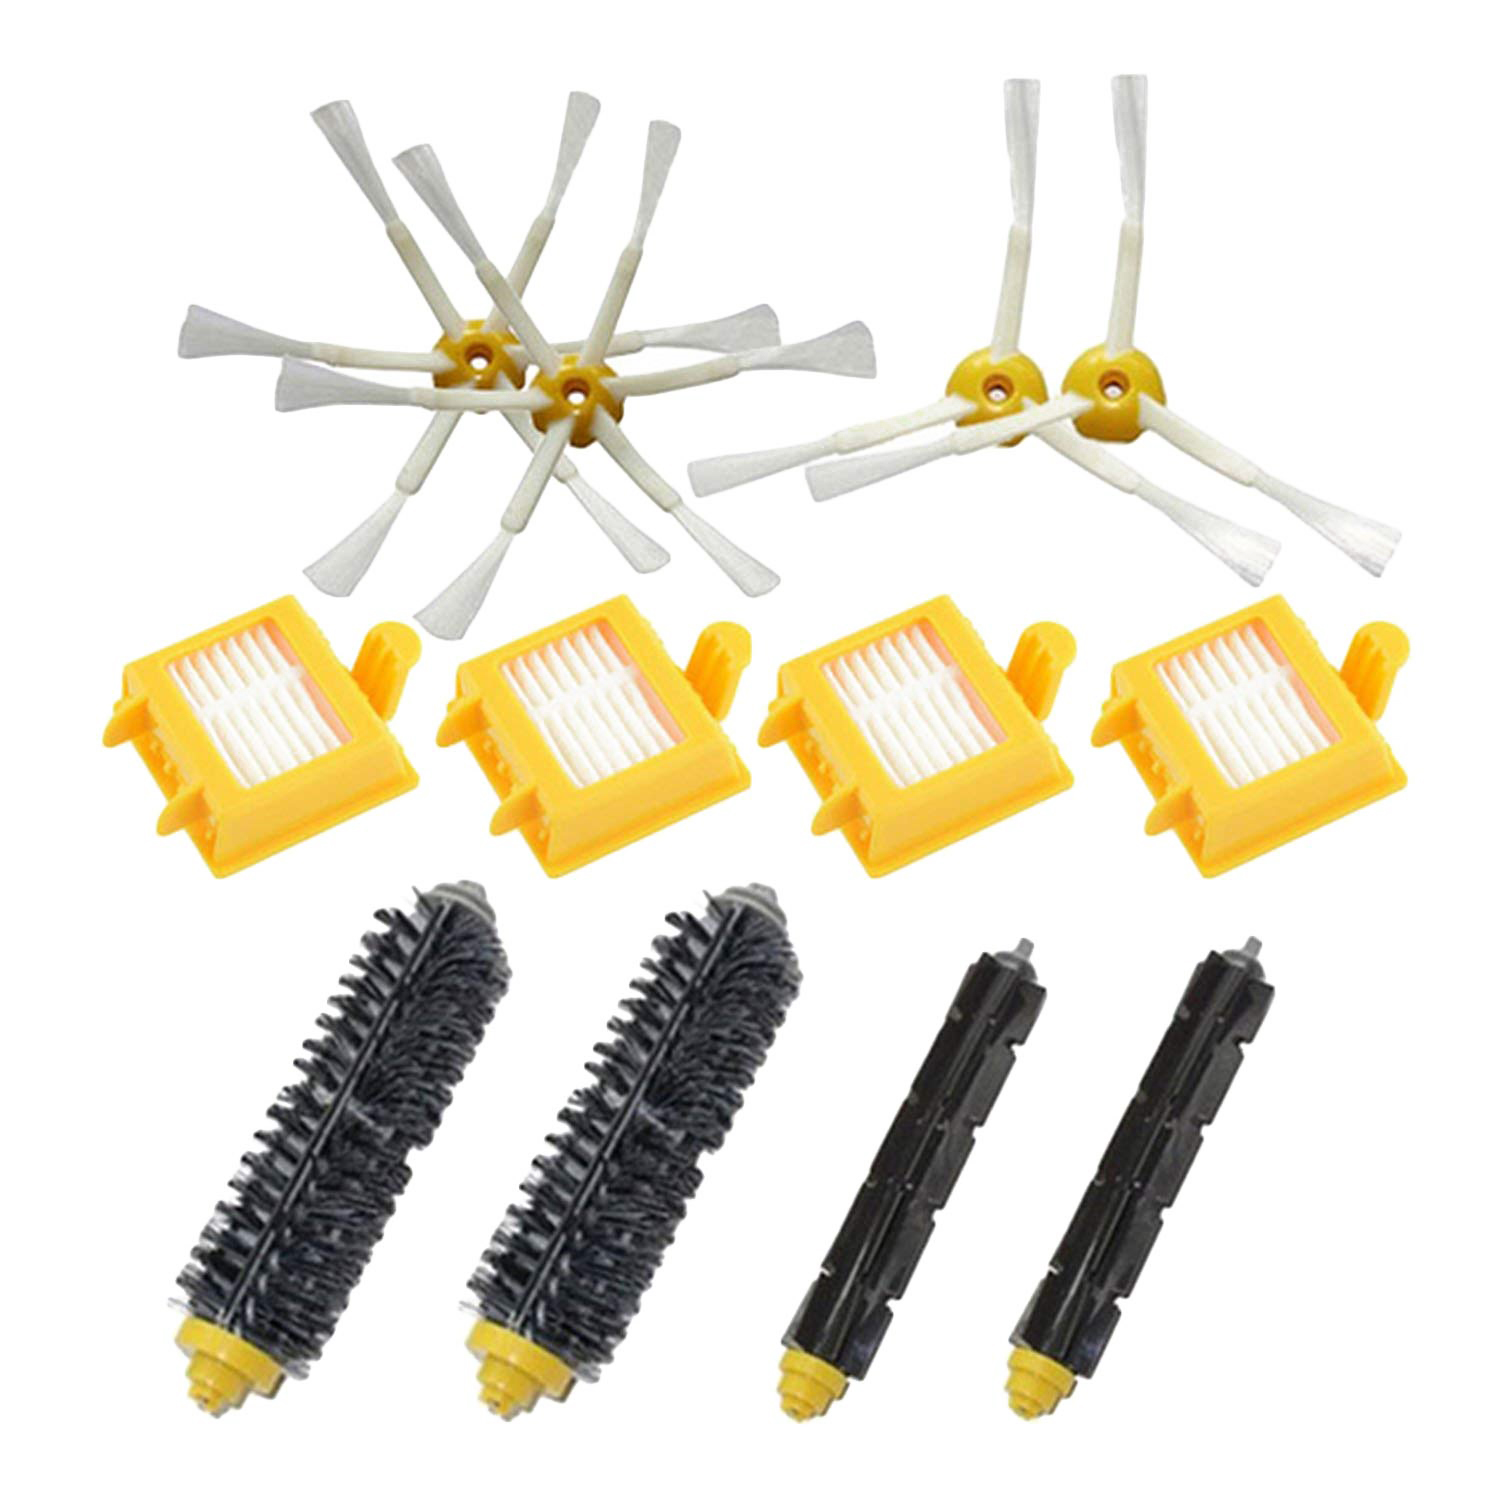 Side Brush + Filter + Bristle Beater Replacement Kit Parts Set for iRobot Roomba 700 Series Vacuum Cleaner Robots 760 77 14pcs free post new side brush filter 3 armed kit for irobot roomba vacuum 500 series clean tool flexible bristle beater brush